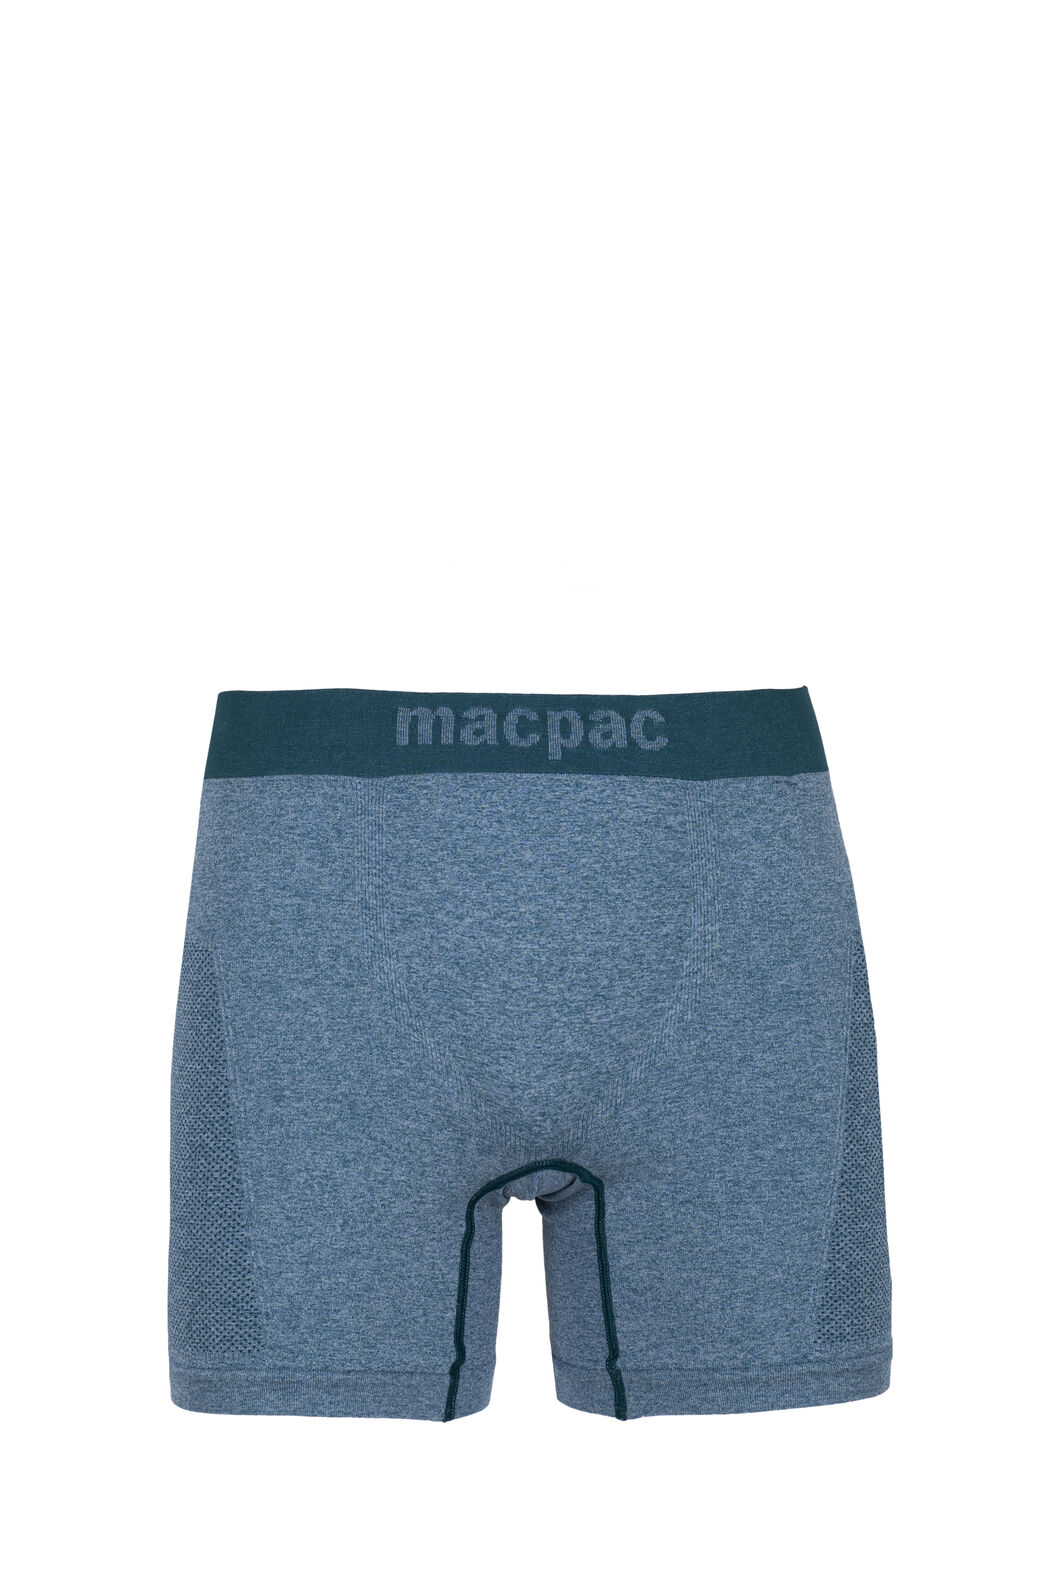 Macpac Limitless Boxer - Men's, Atlantic Deep, hi-res